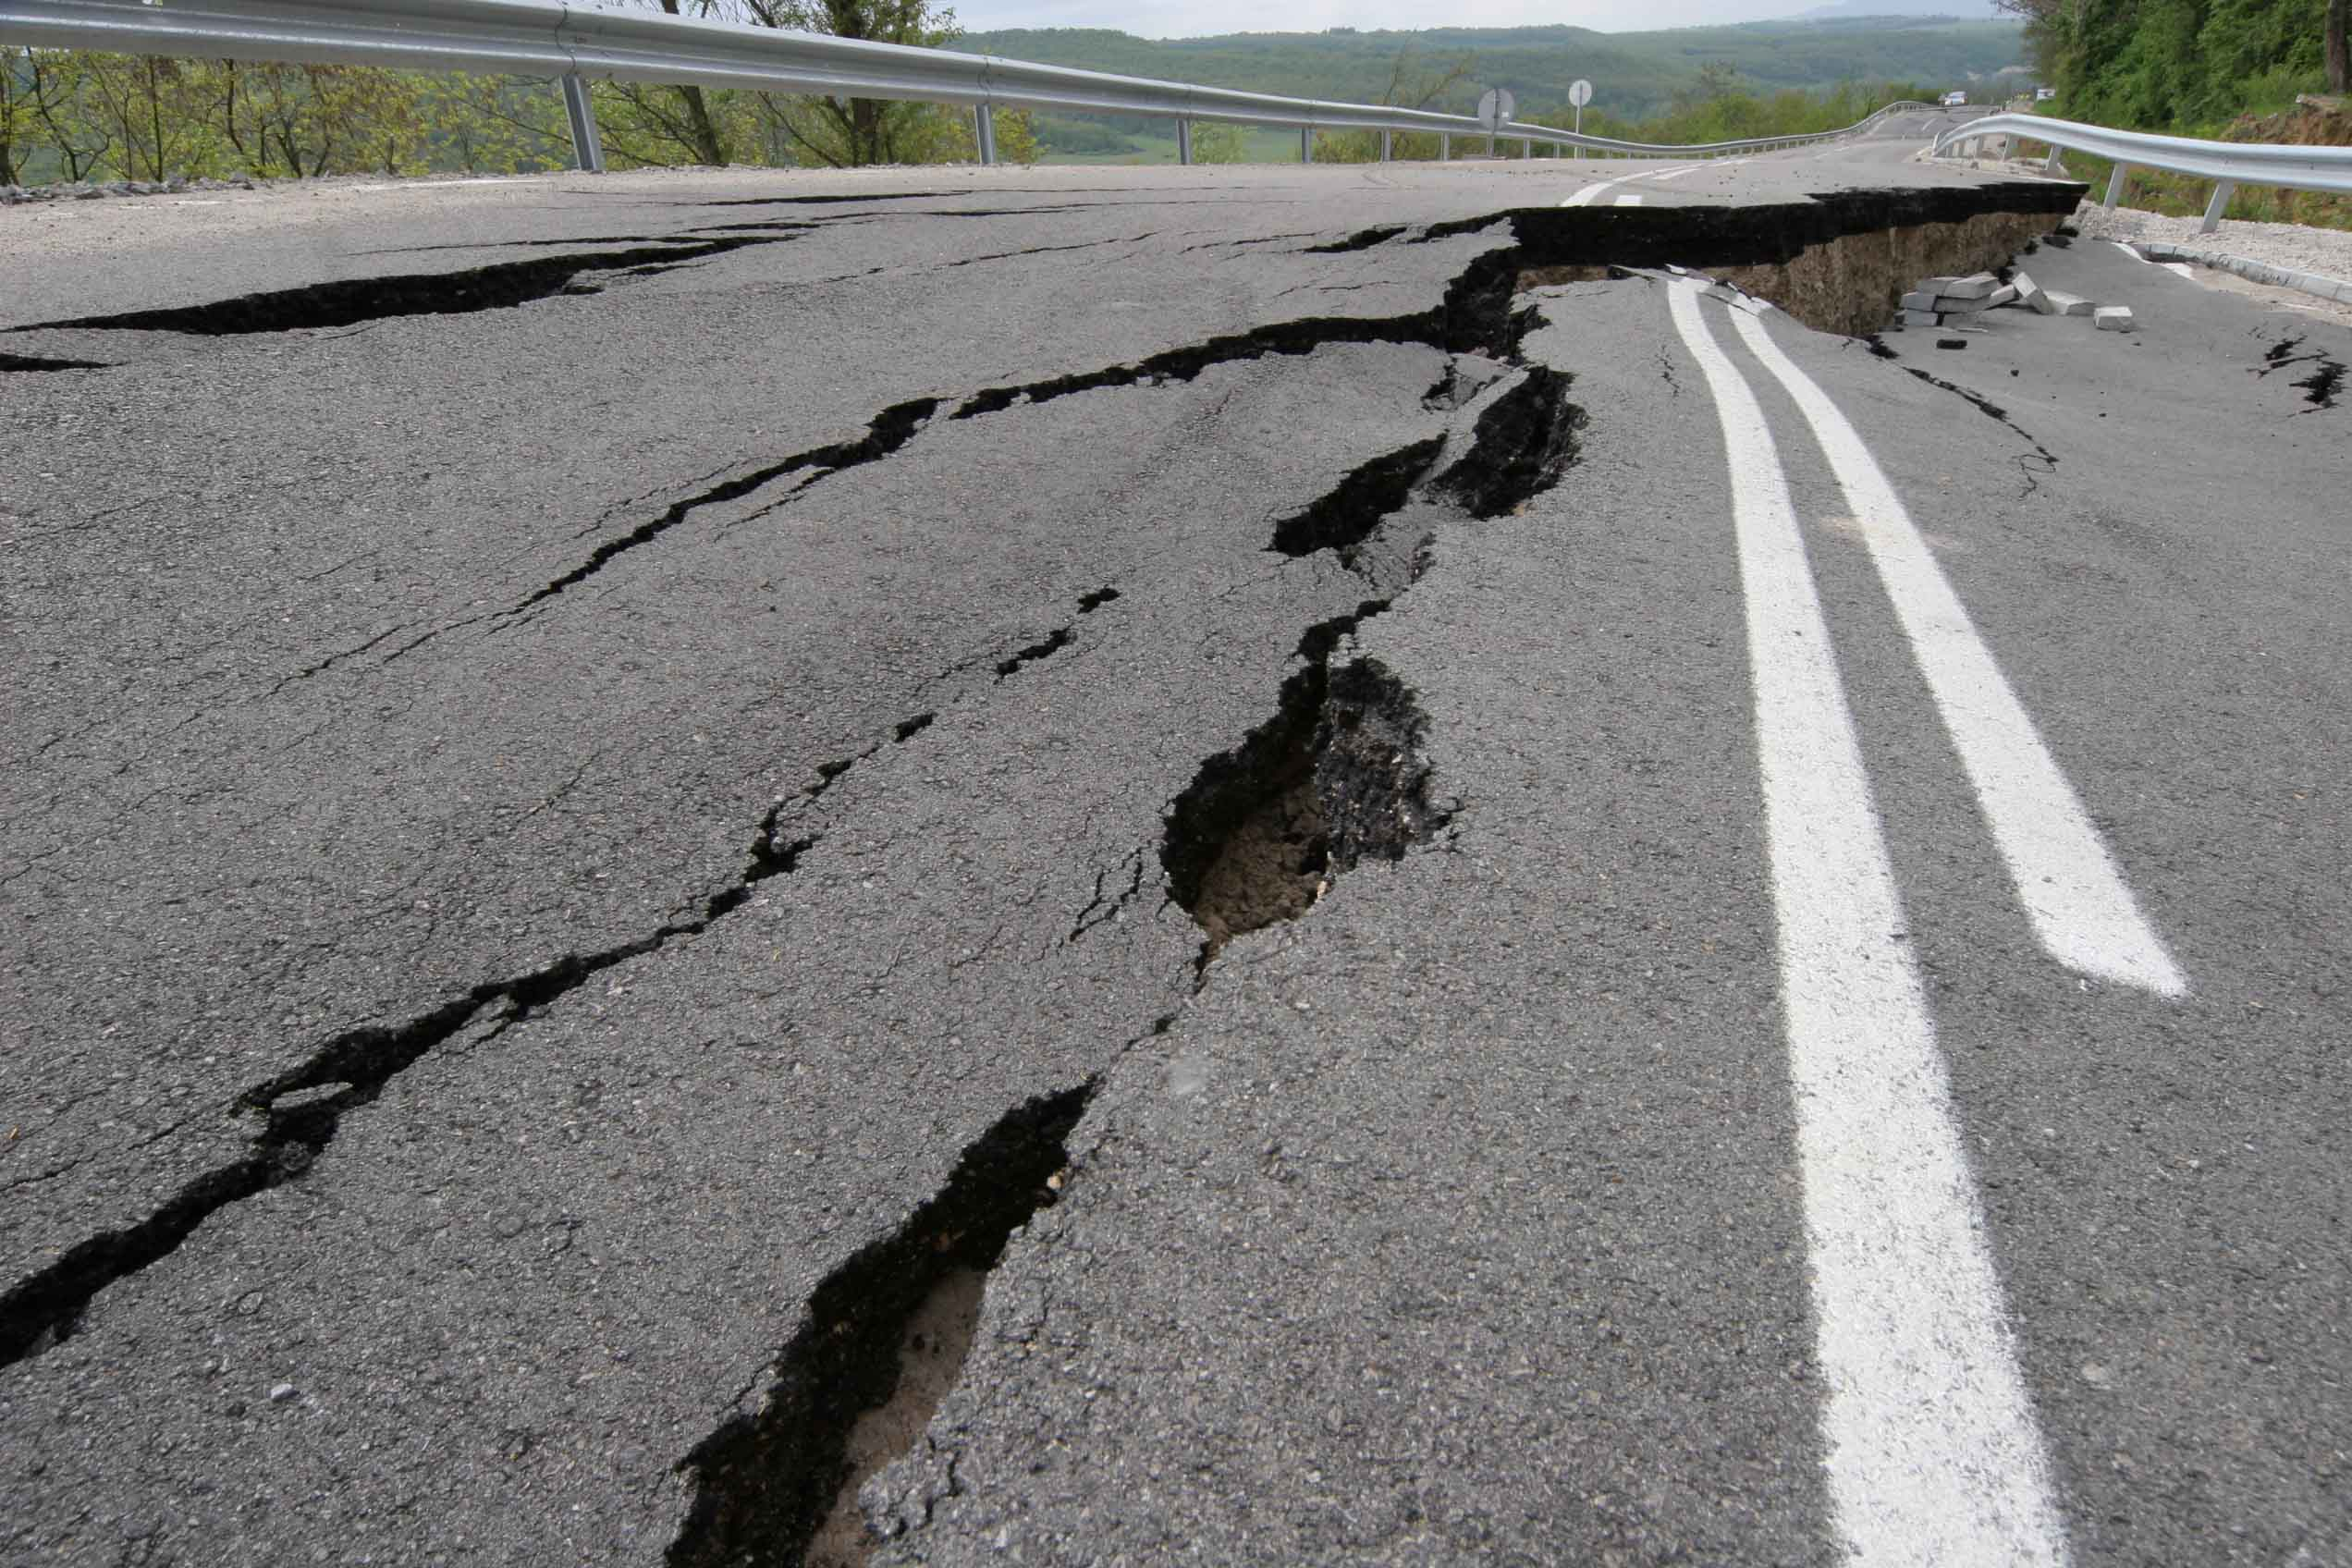 Road prone to earthquakes